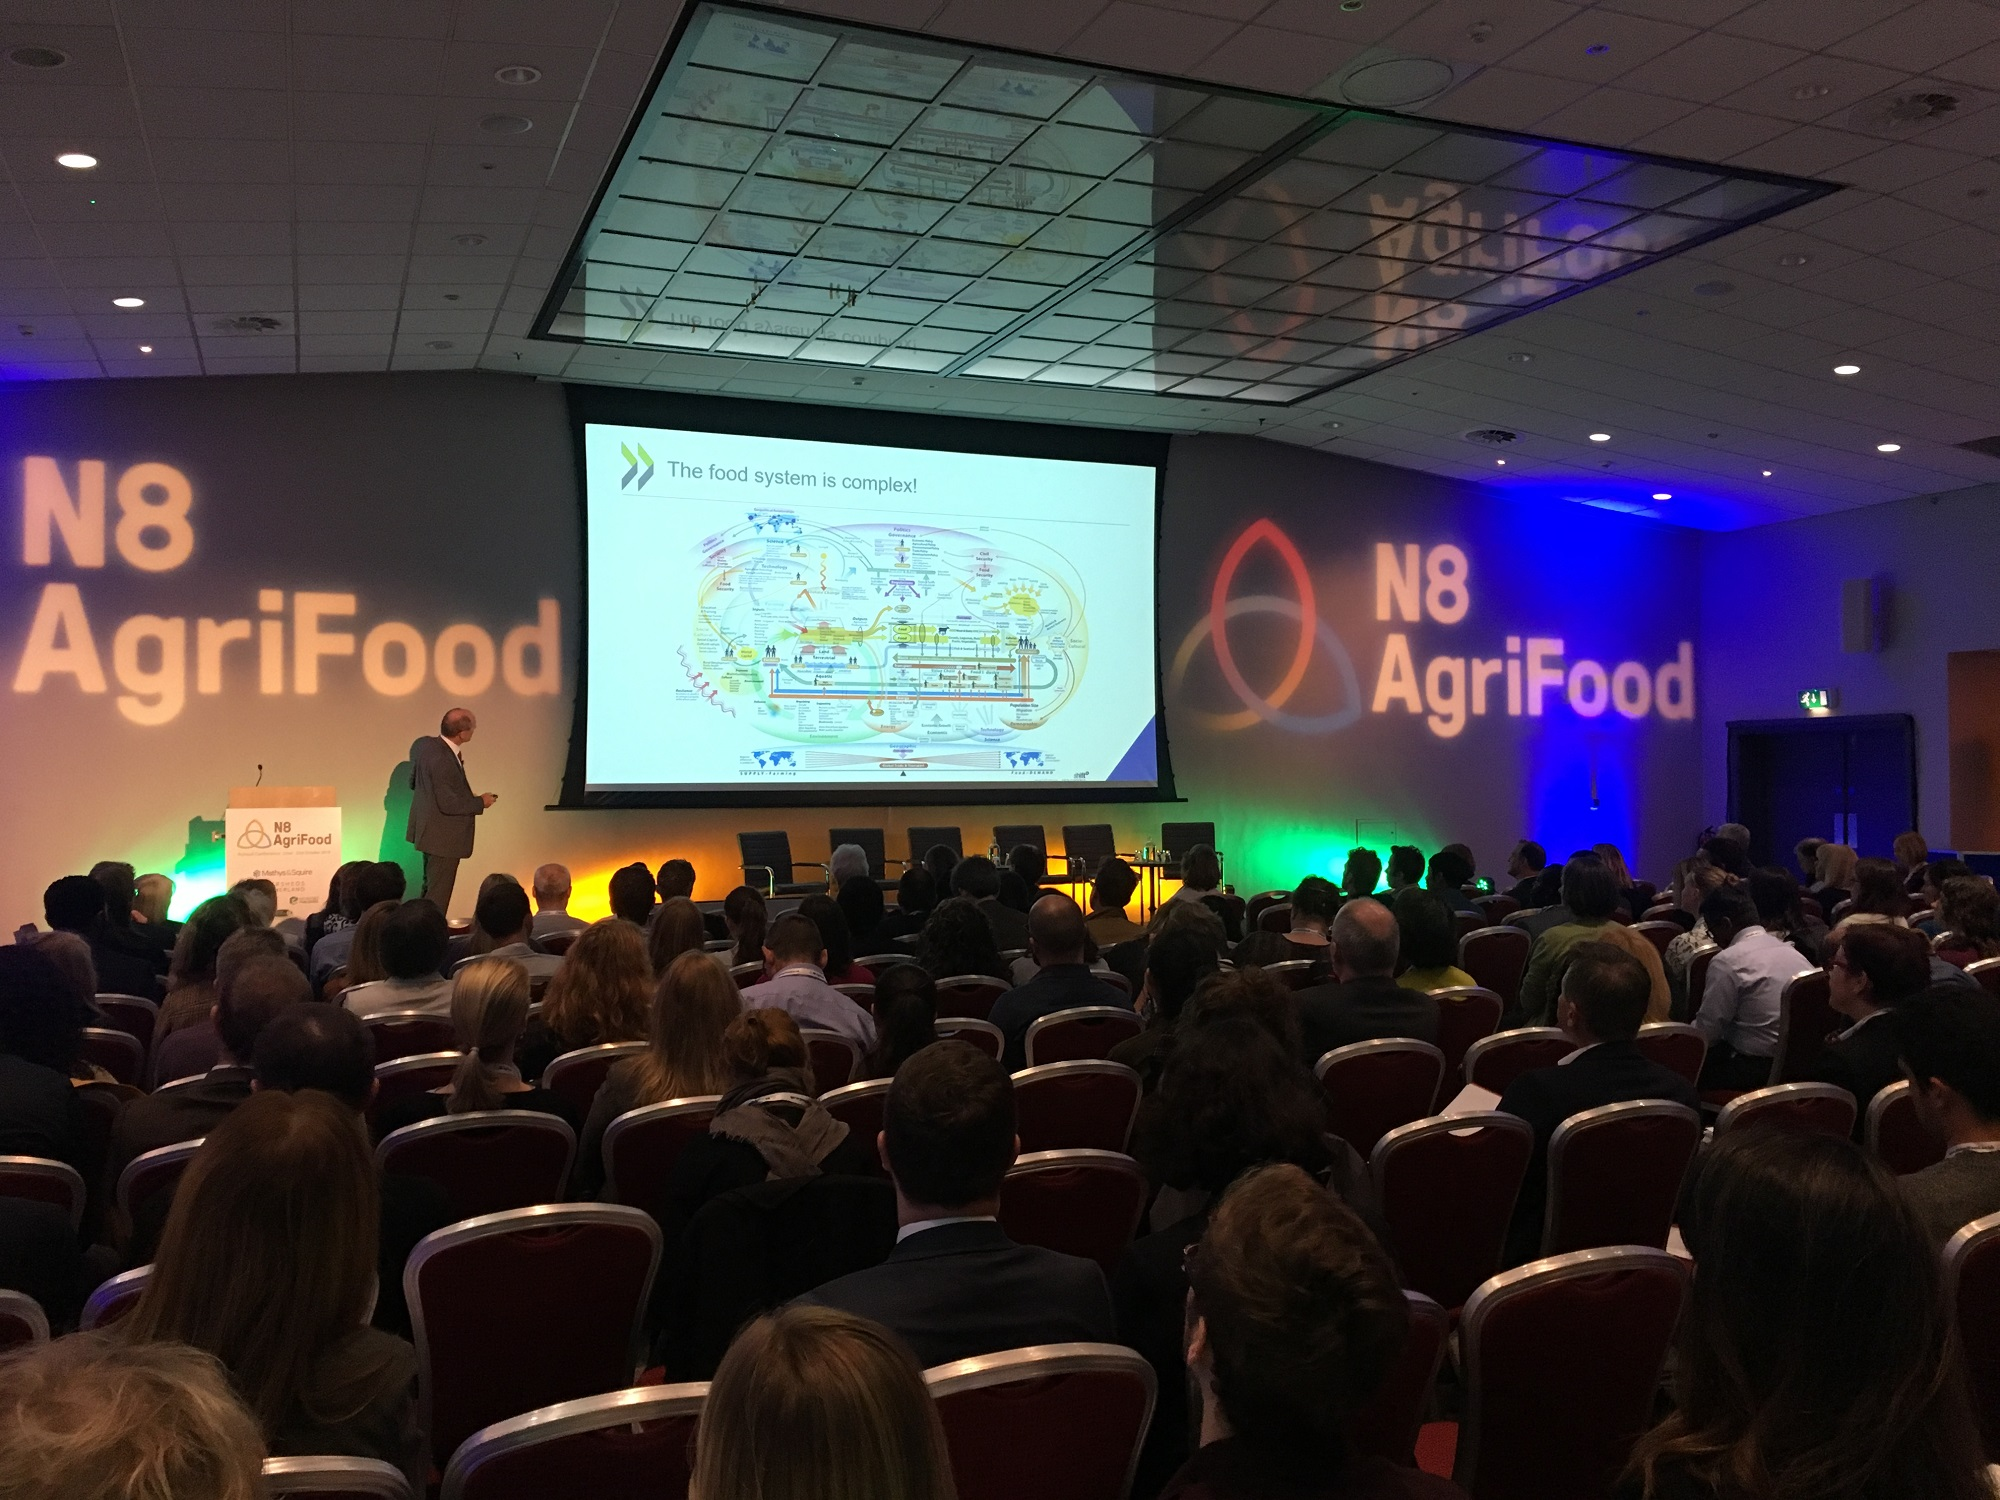 Day 1 - N8 AgriFood Conference